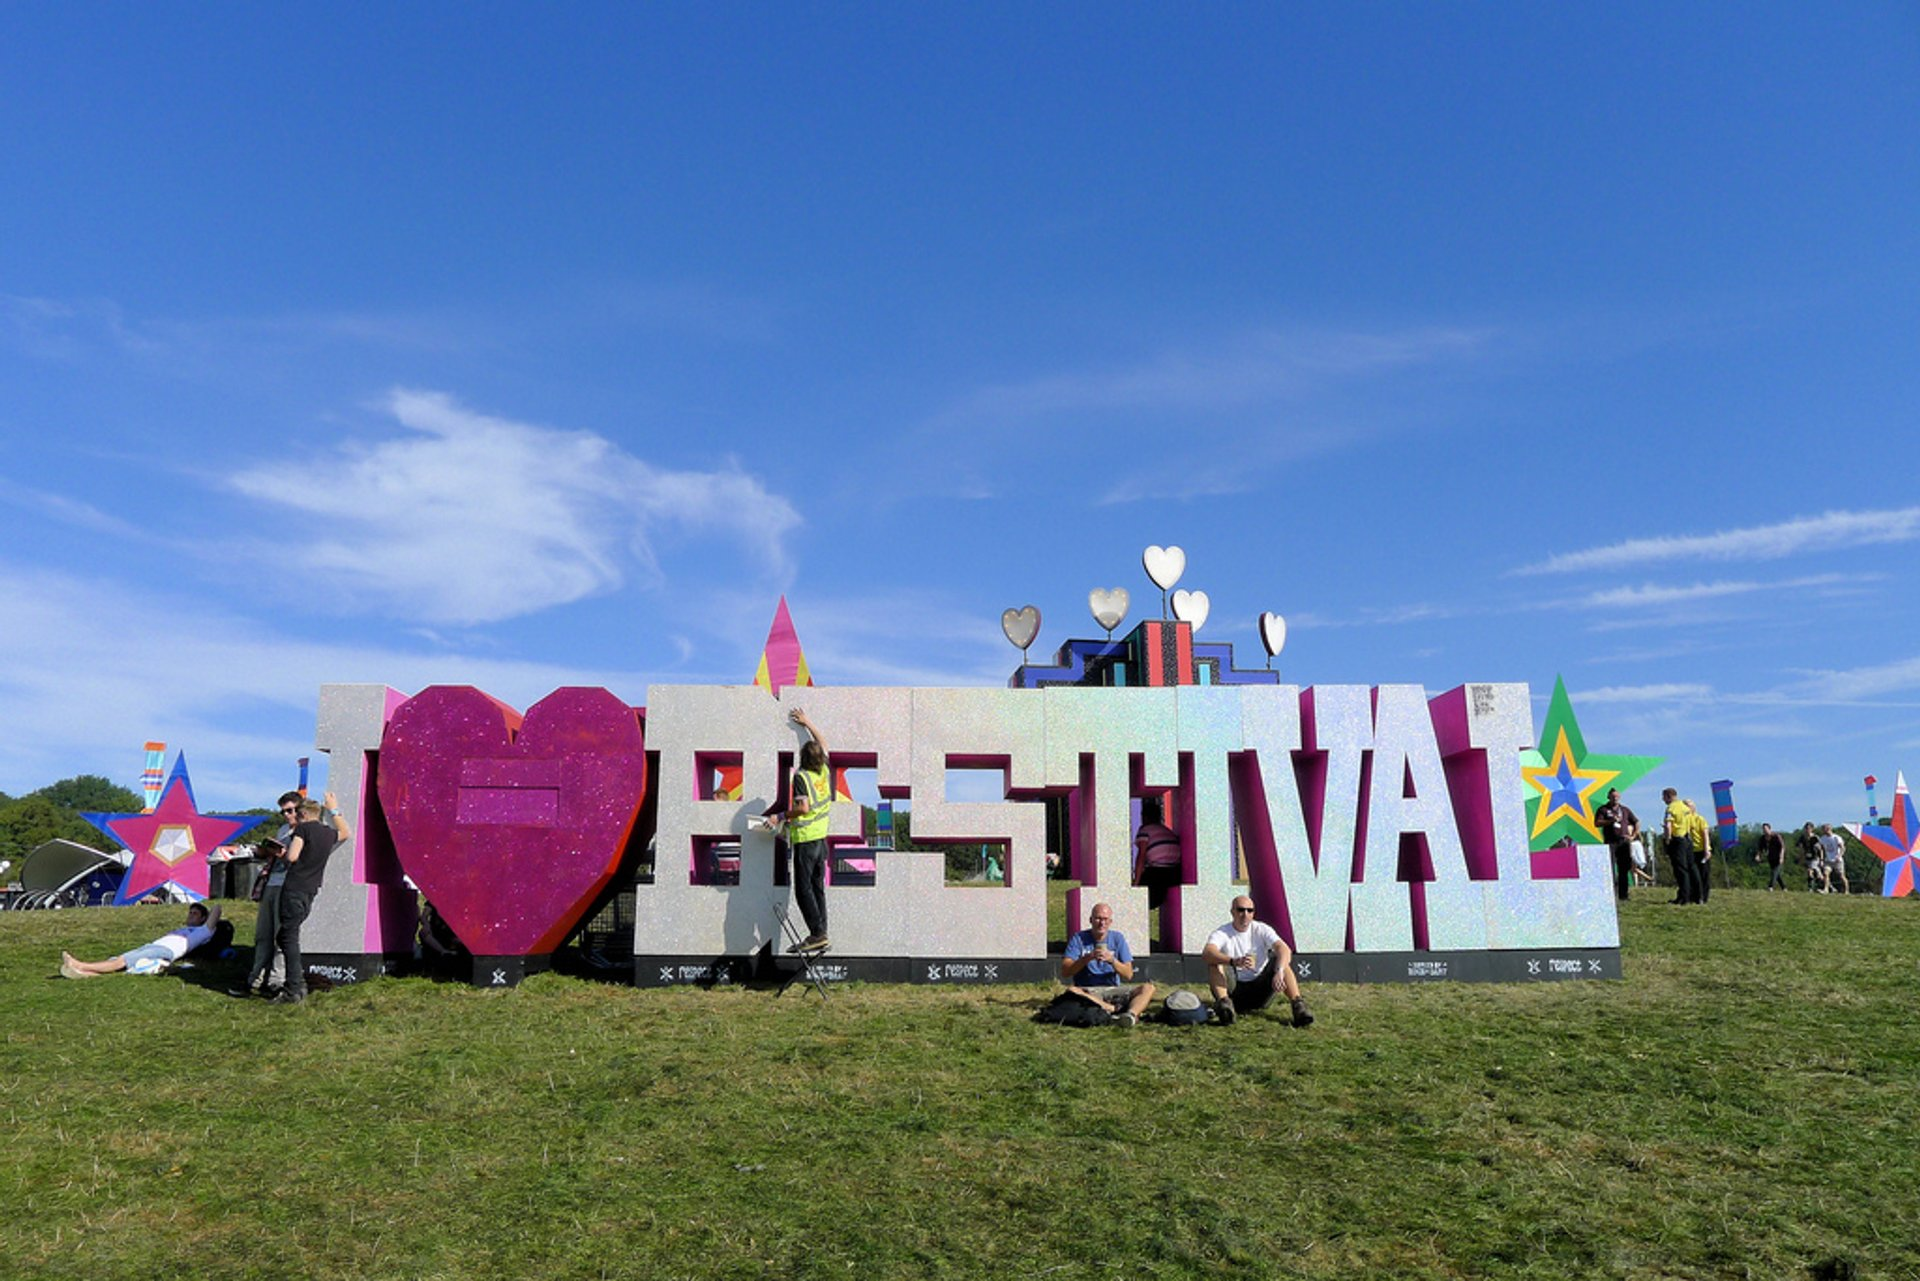 Best time for Bestival Toronto in Toronto 2019